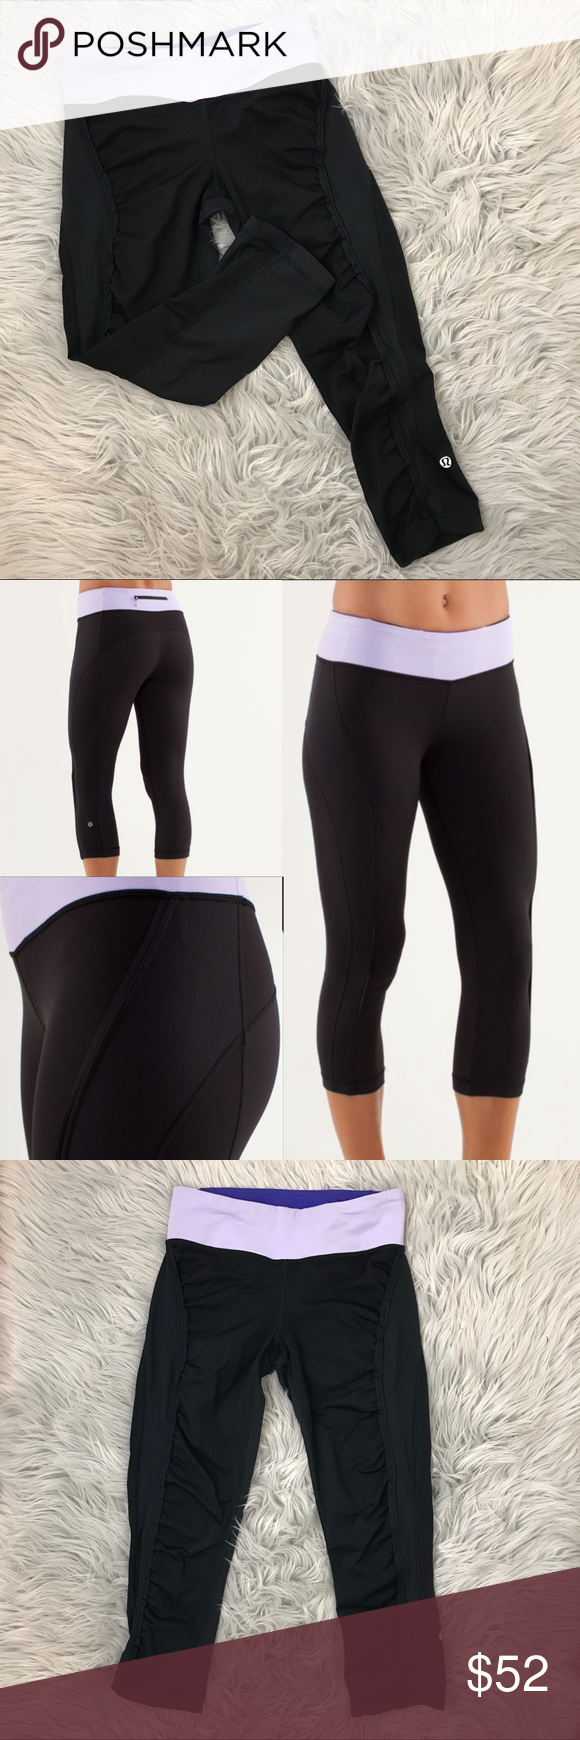 """Lululemon Run Sun Sprinter Crop 4 Great conditions no pilling  Hemmed once at lululemon shown in last picture  Adjustable string  Two hidden pockets inside waistband and one outside  8"""" front rise  19.5"""" inseam lululemon athletica Pants Ankle & Cropped"""